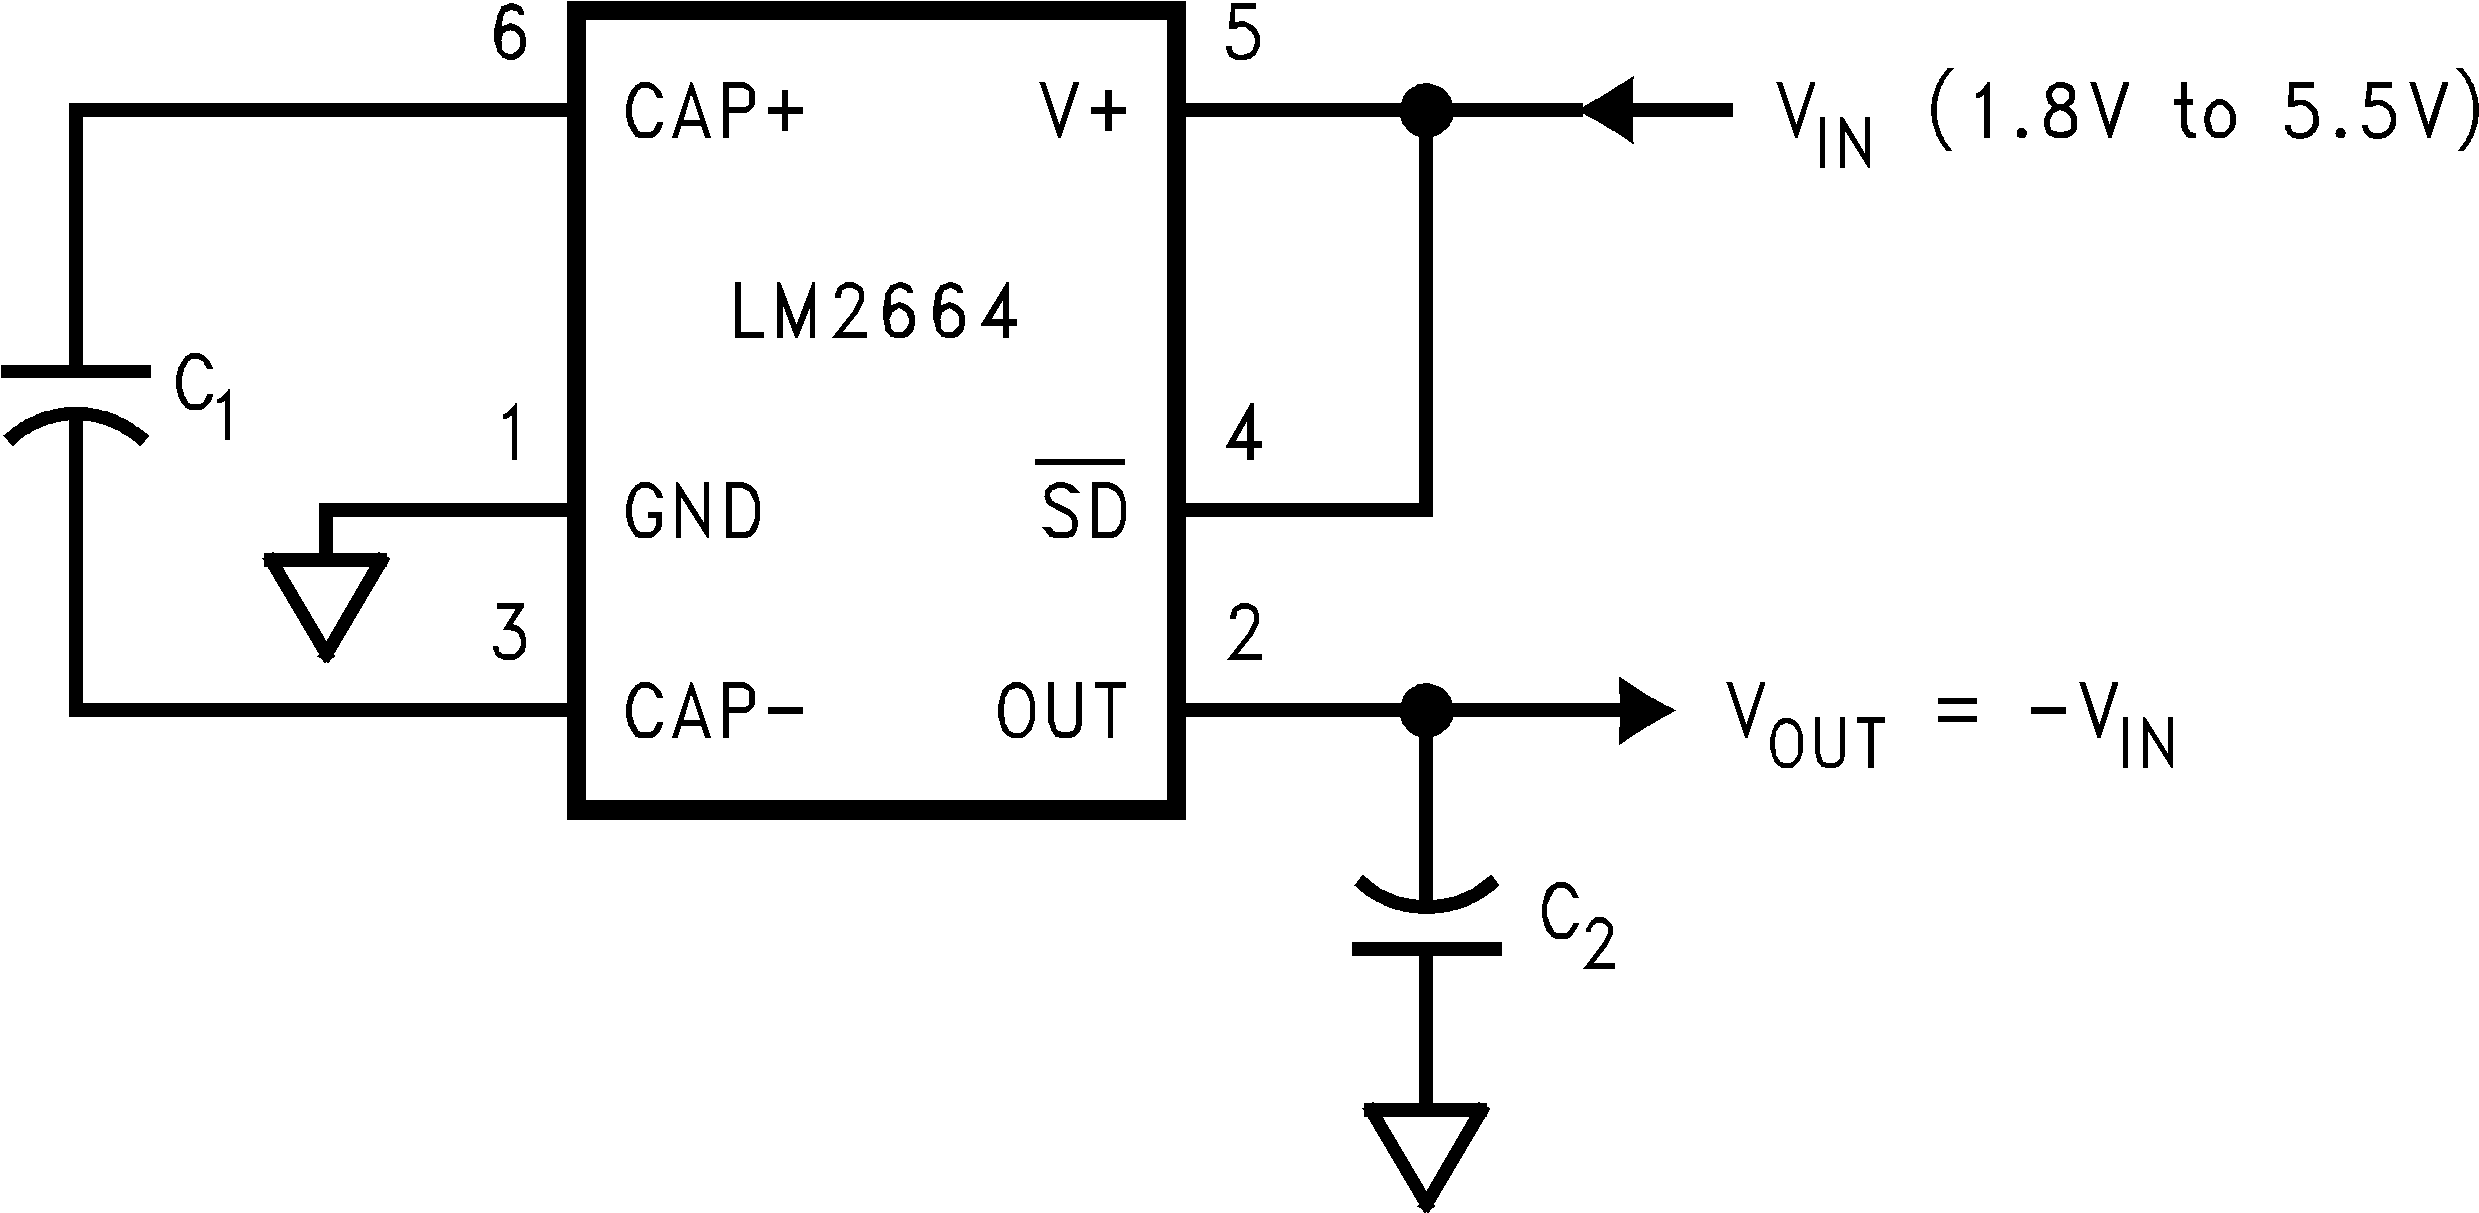 Lm2664 Capacitor Discharging Circuit 92 Typical Application Voltage Inverter